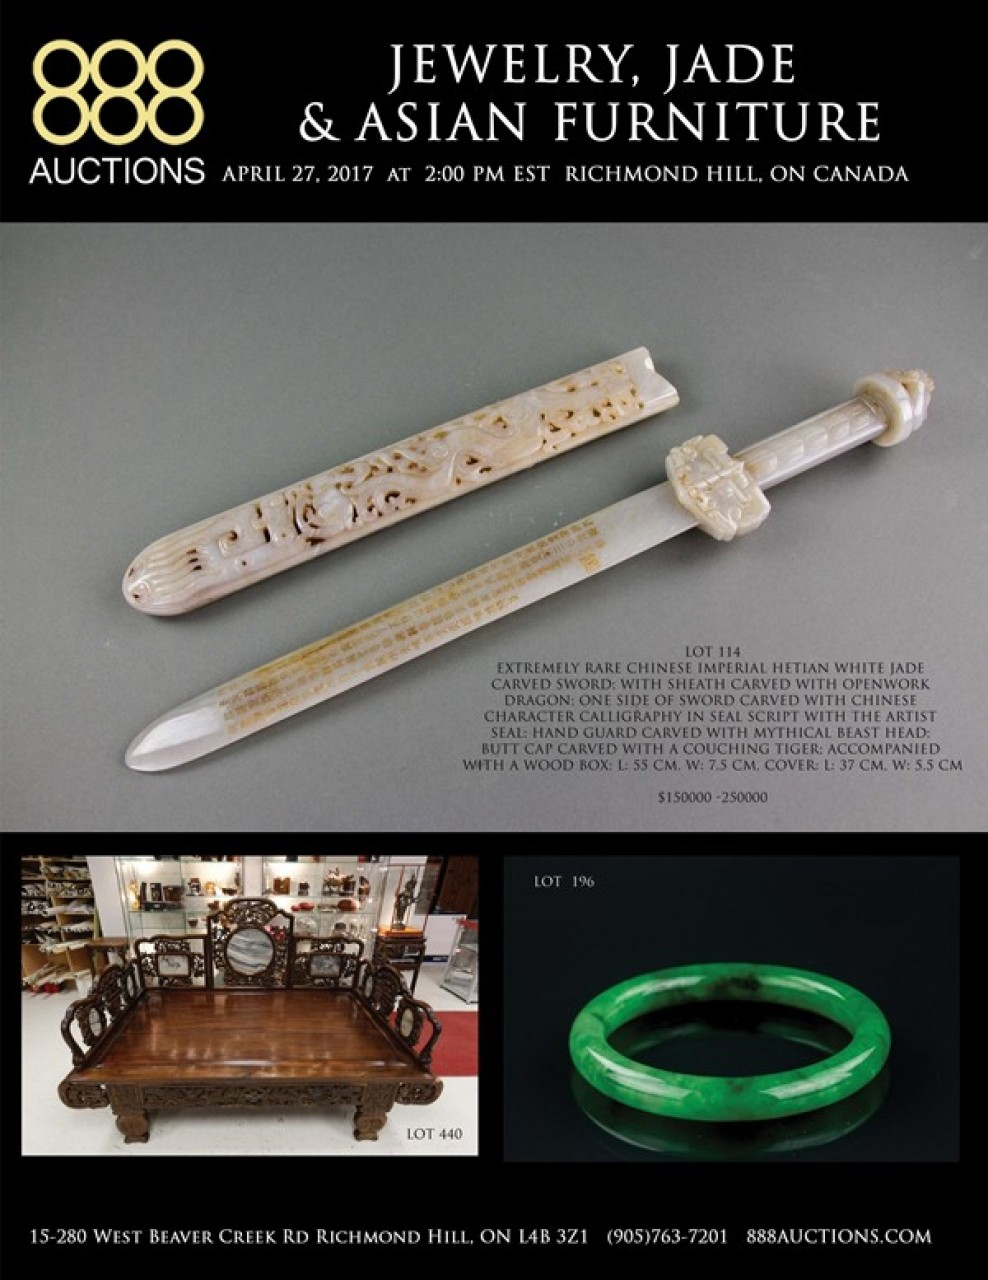 NEXT AUCTION: Thursday April 27 JEWELRY, JADE & ASIAN FURNITURE